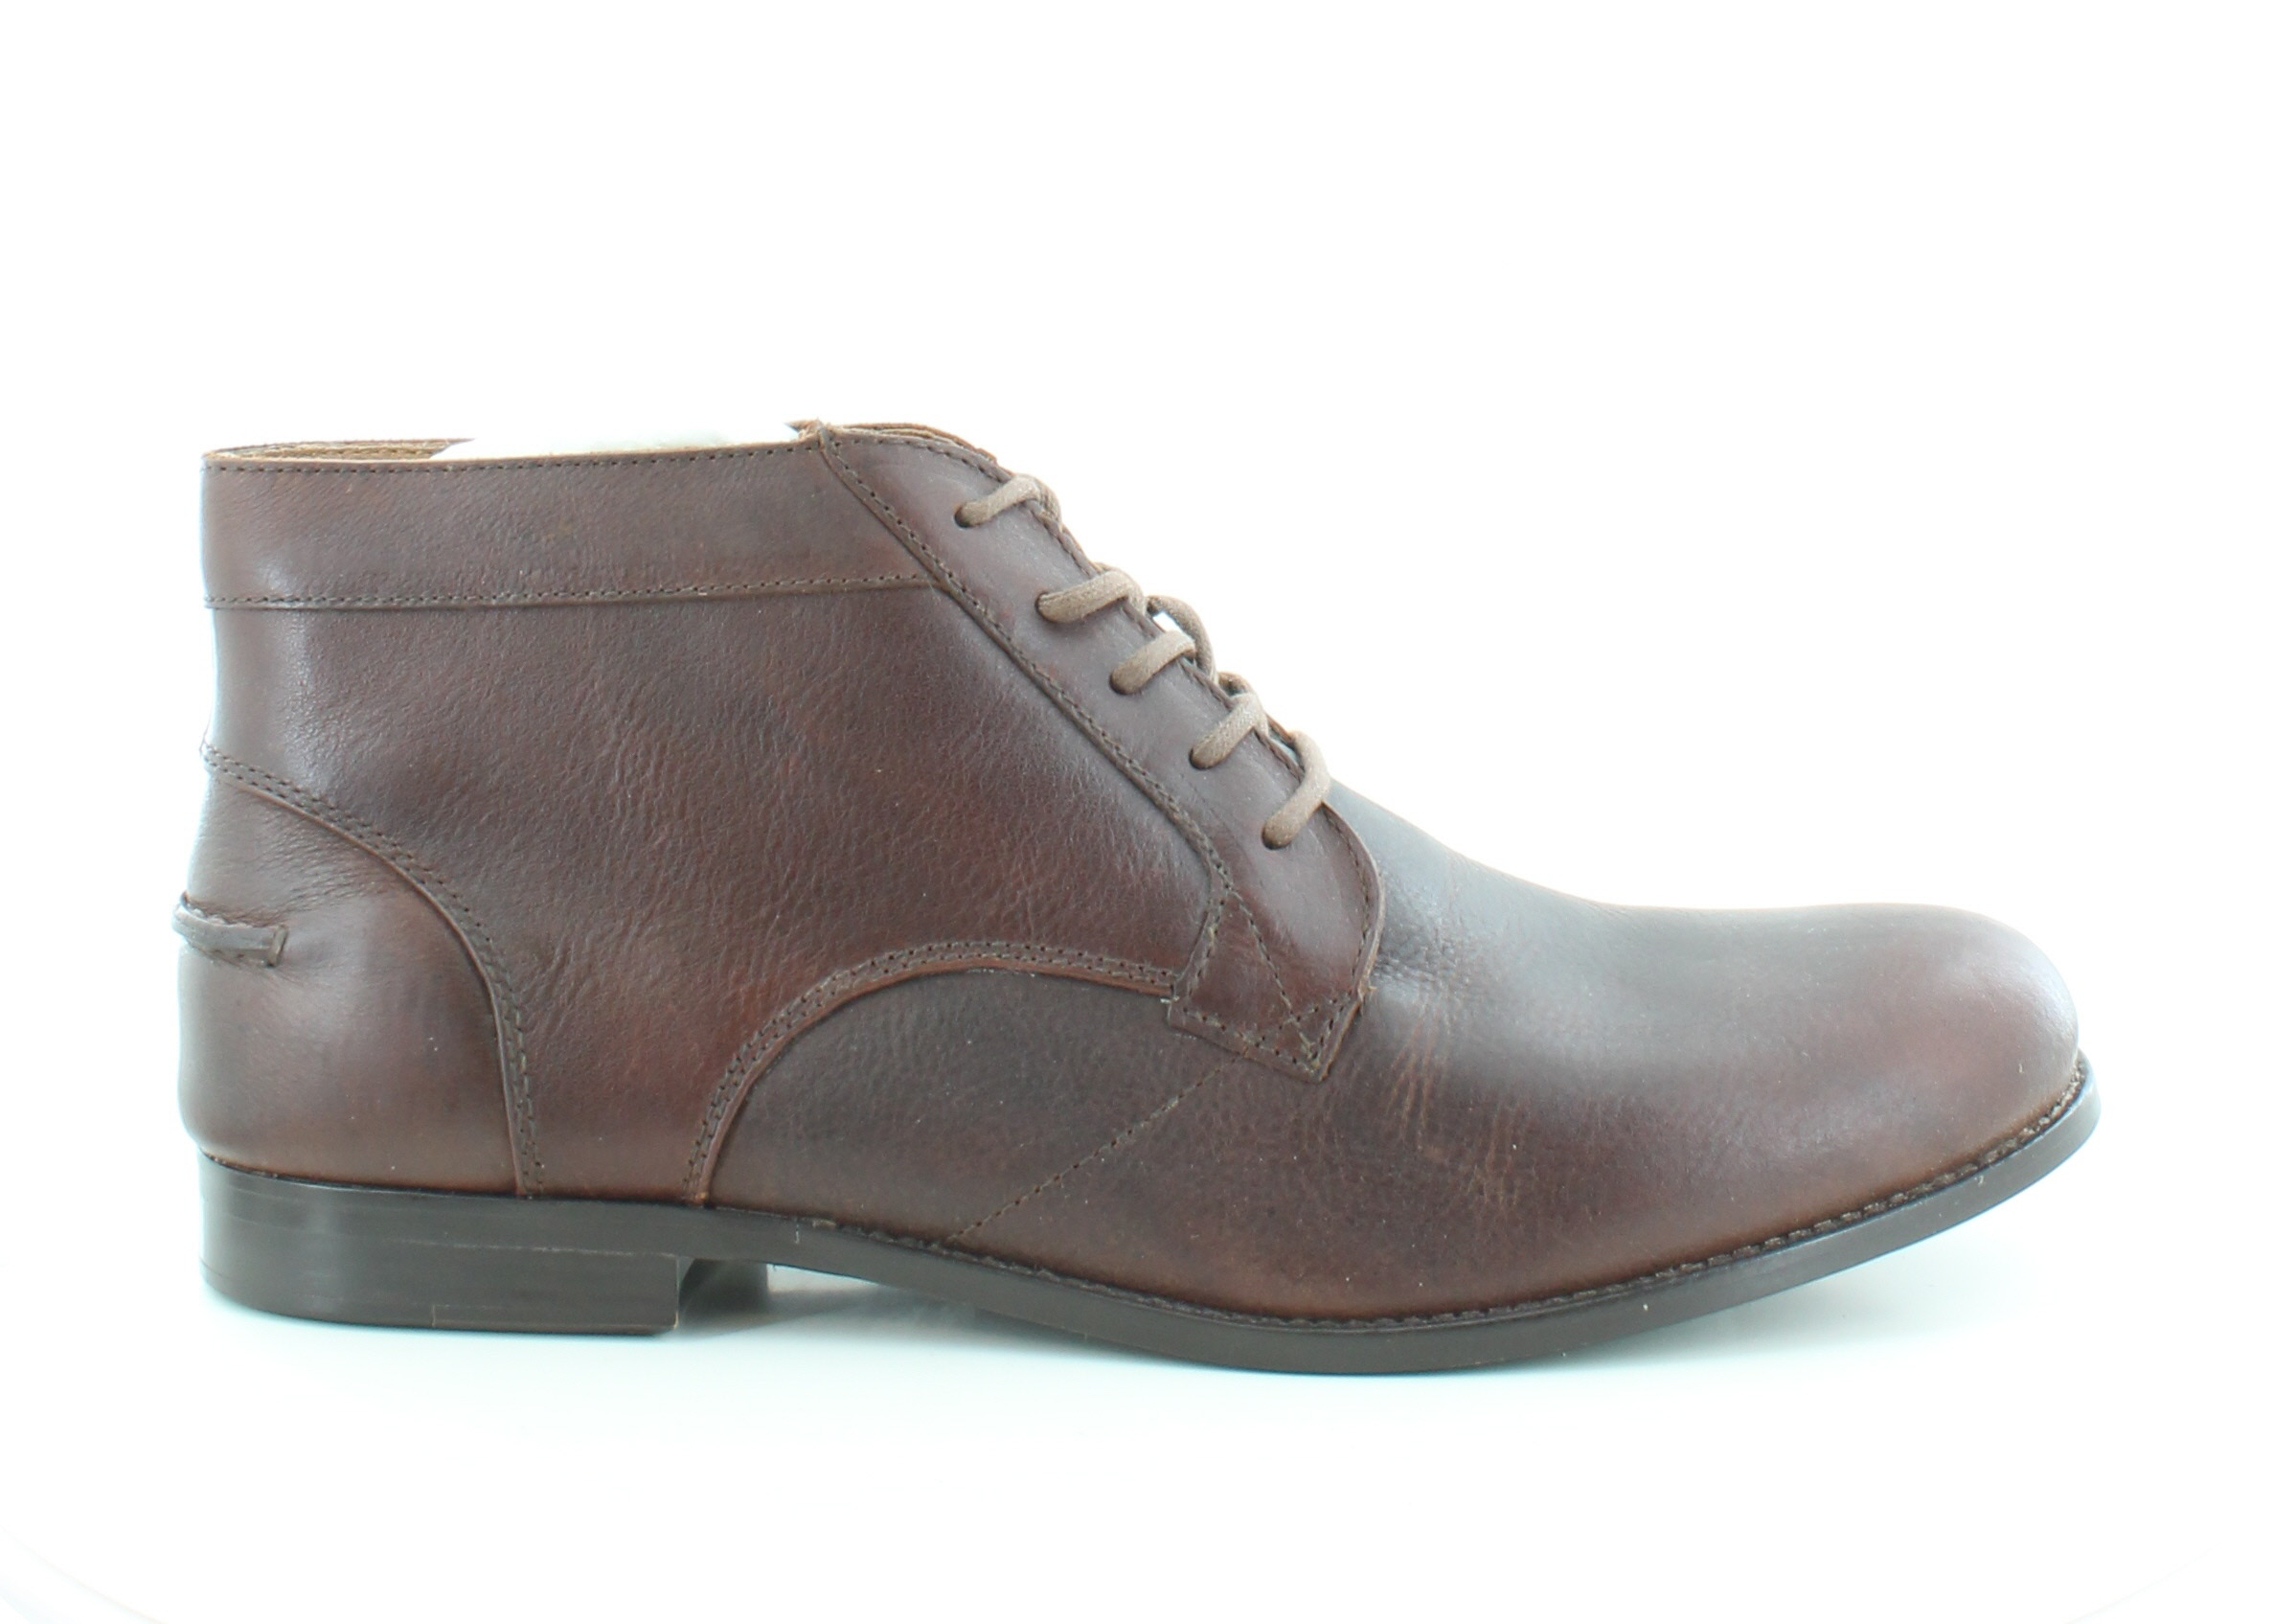 fossil new dayton brown mens shoes size 13 m boots msrp